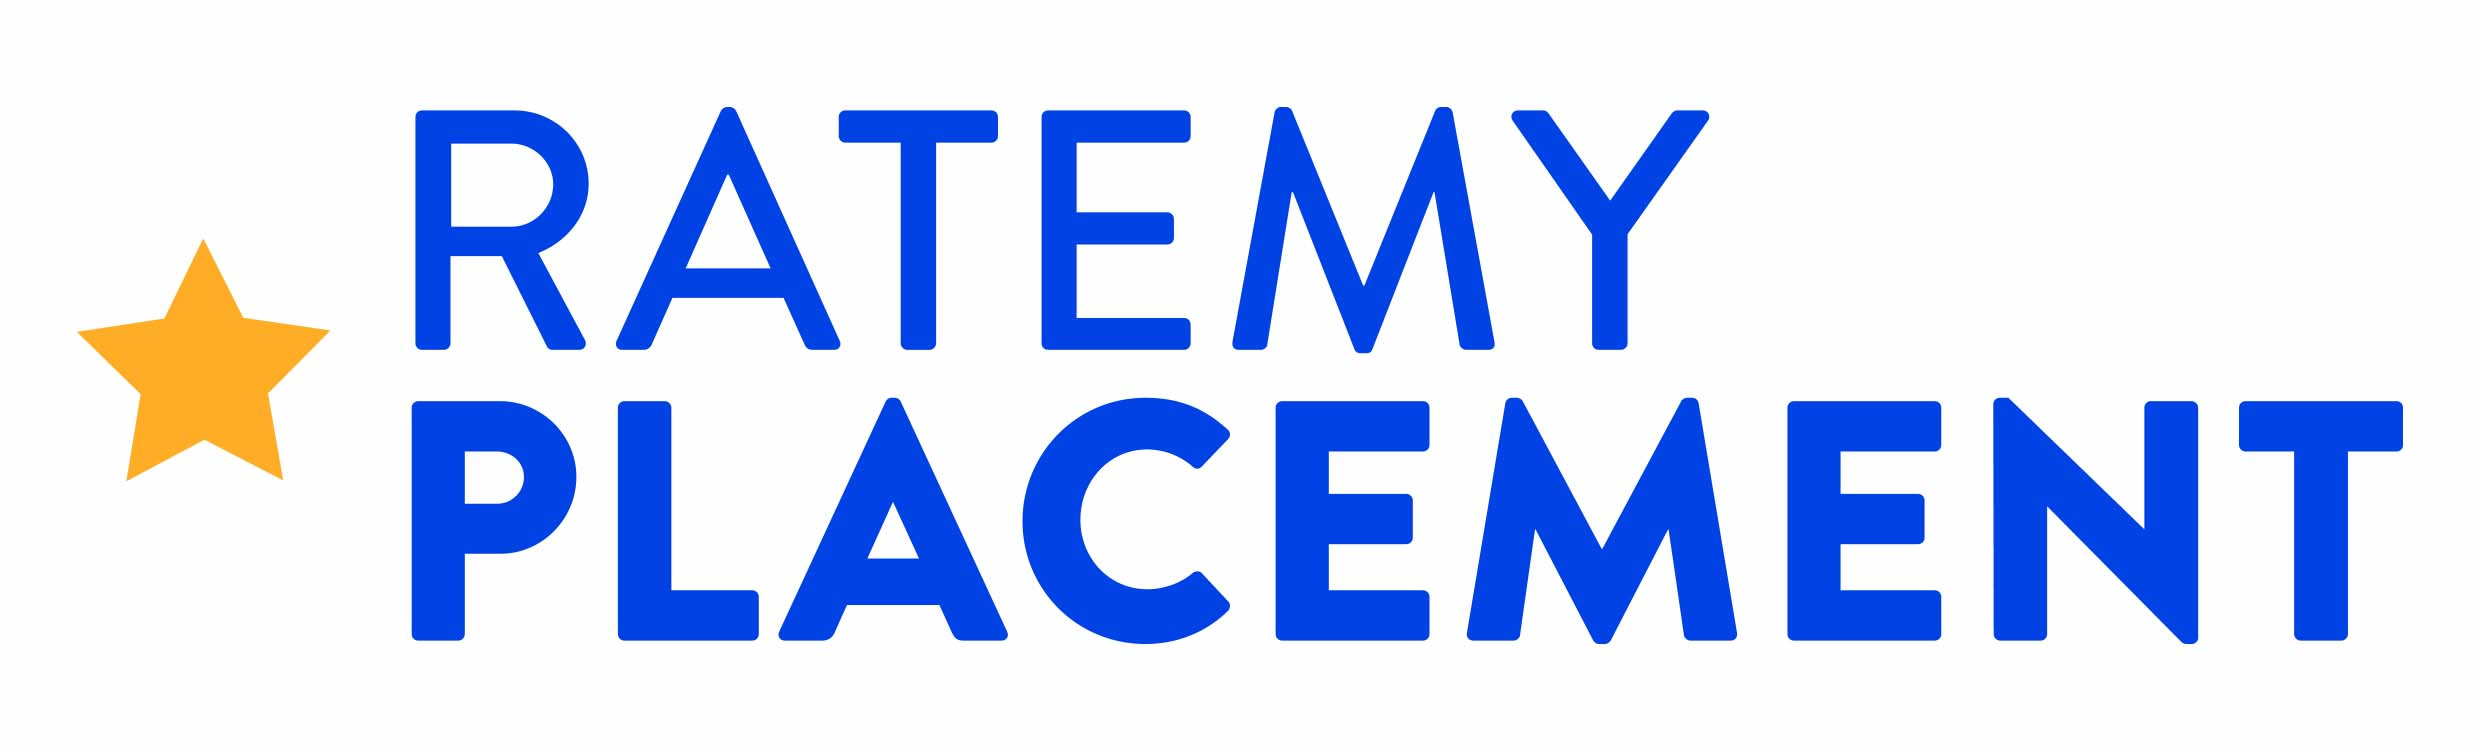 1 RateMyPlacement logo